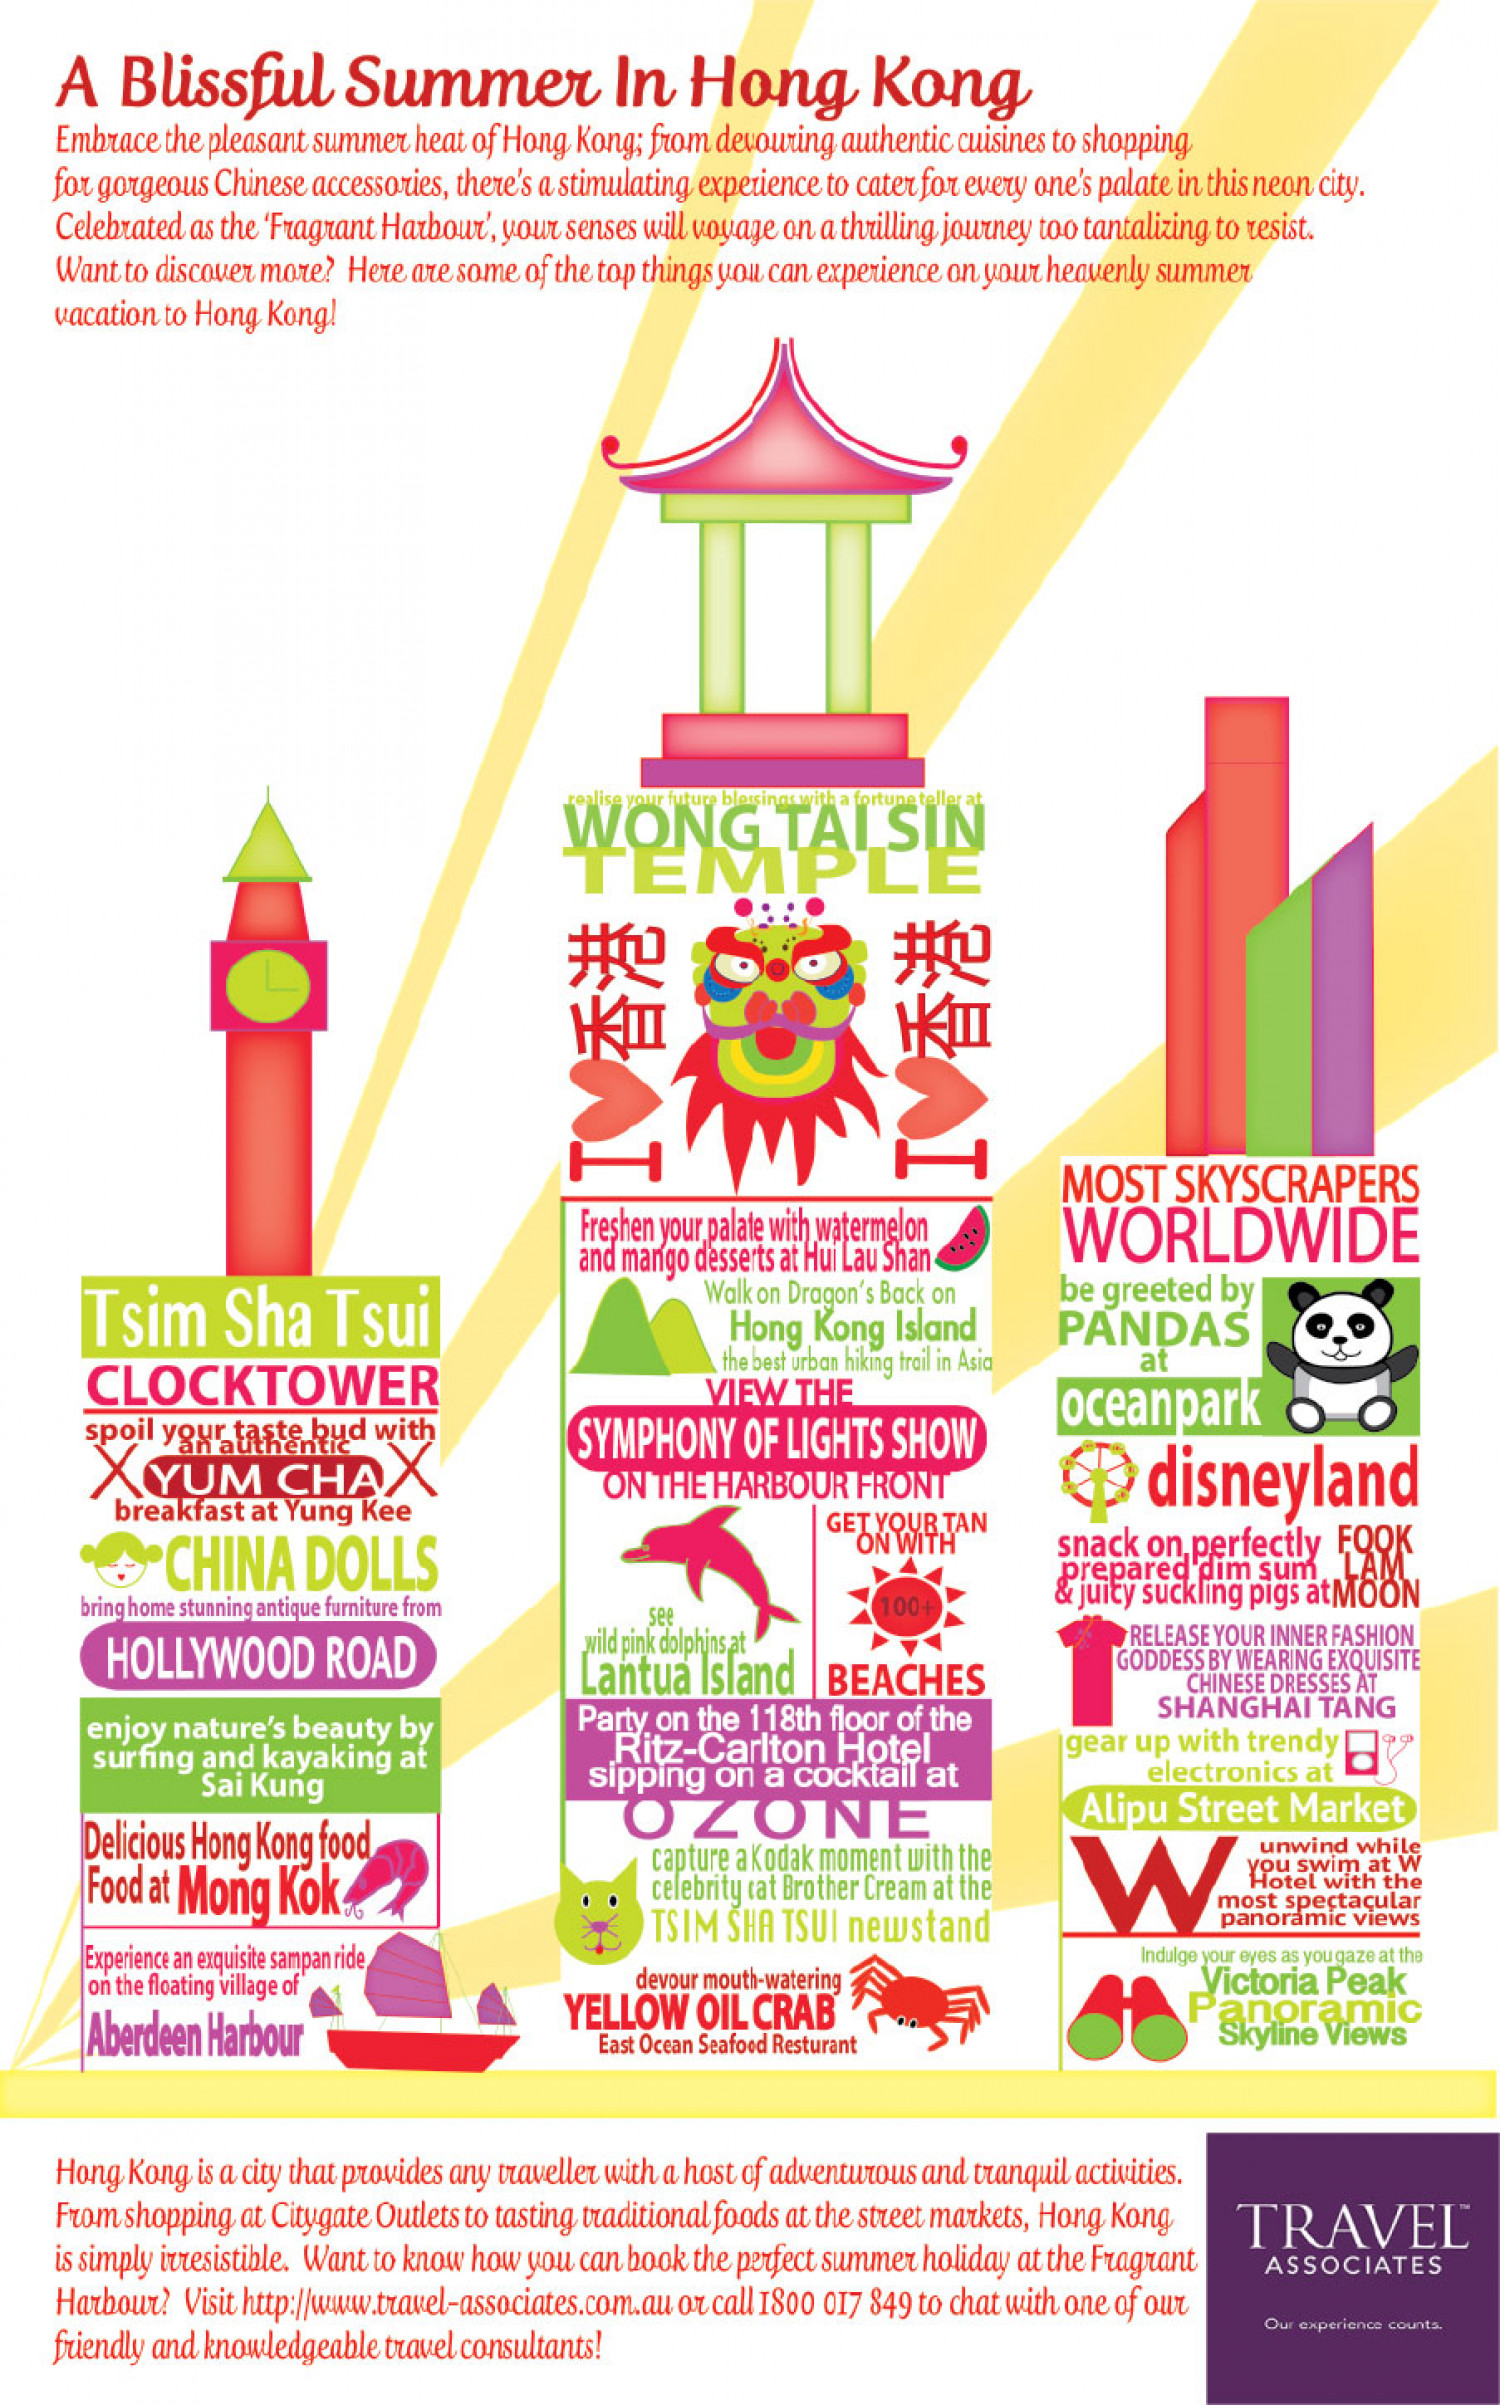 A Blissful Summer in Hong Kong Infographic